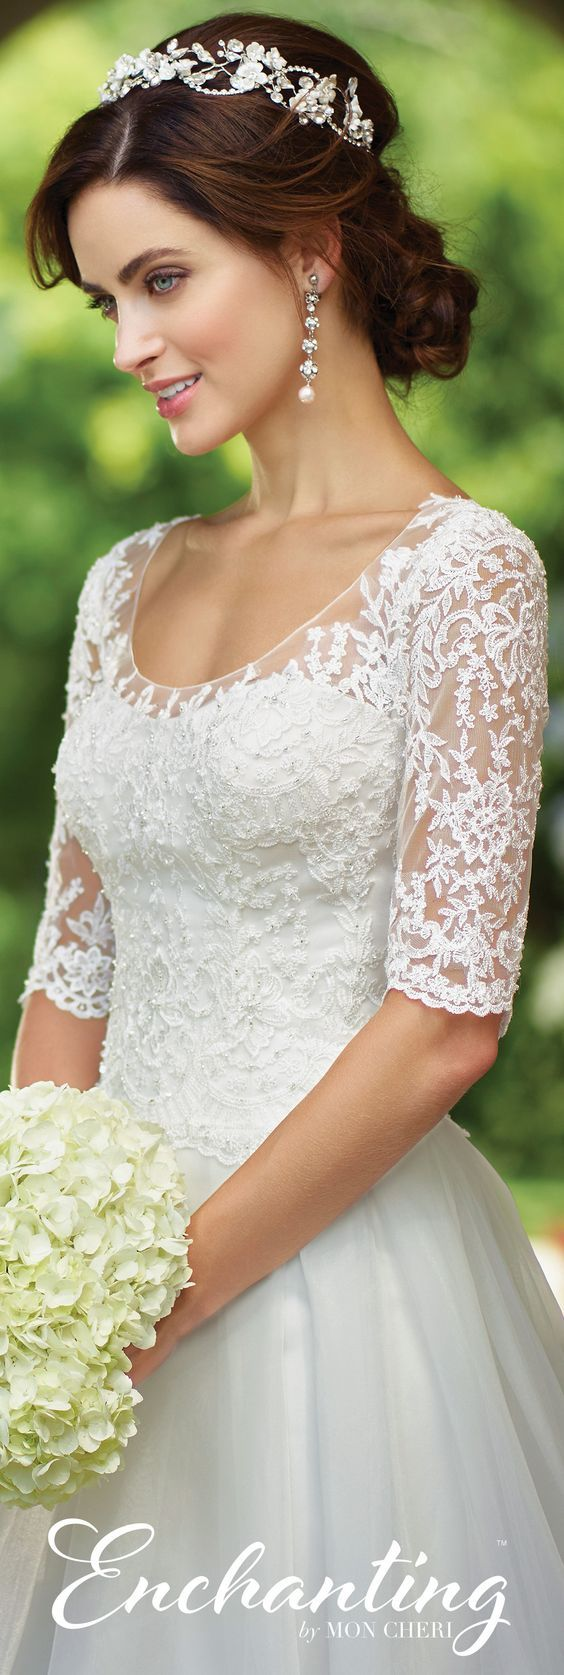 Enchanting by mon cheri spring wedding gown collection style